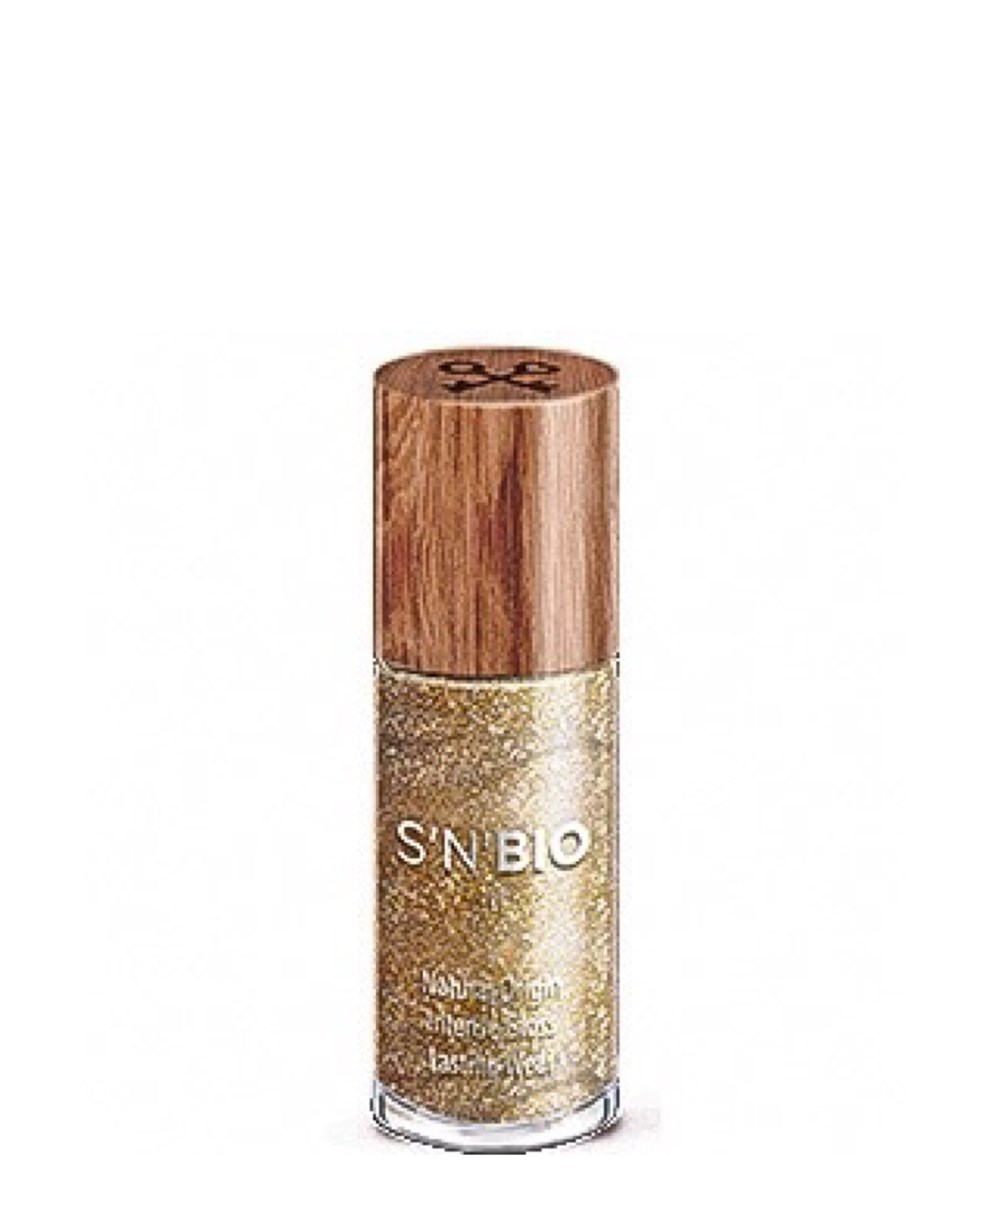 S'N'Bio Vegan Polish - Earth Collection - Gold